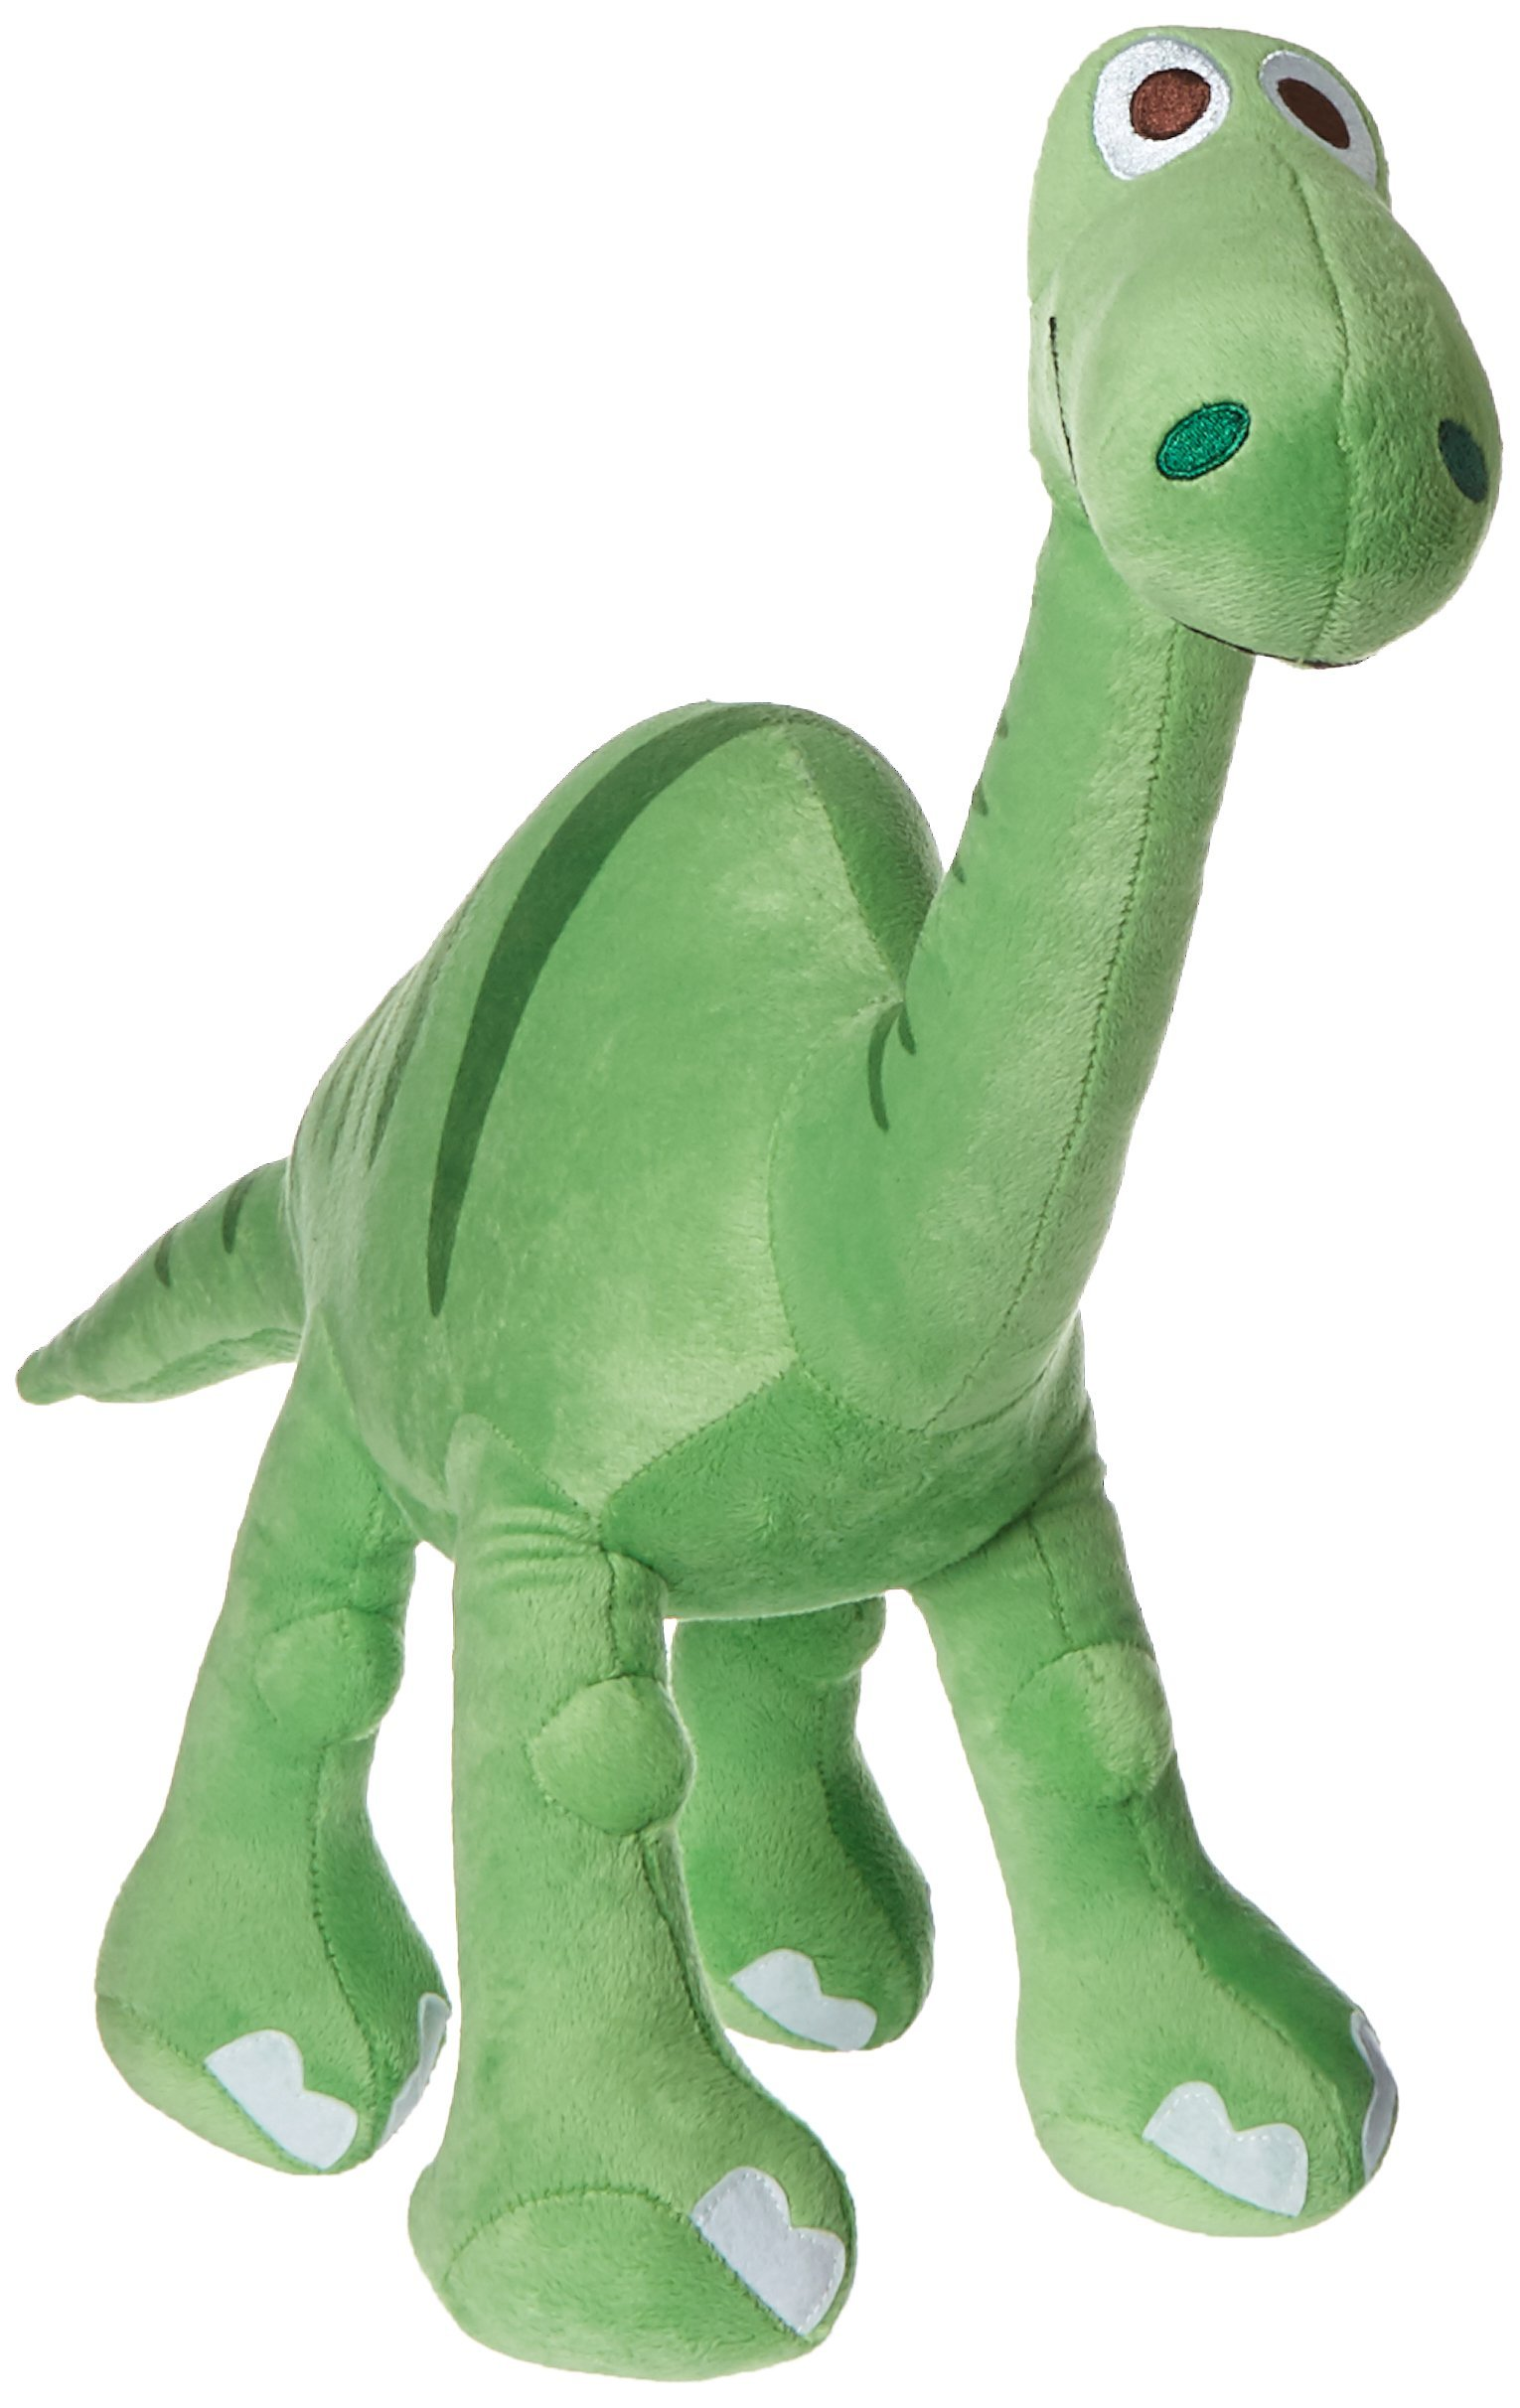 Disney/Pixar Good Dinosaur Arlo 26'' x 14'' Plush Pillow Buddy by Disney Pixar